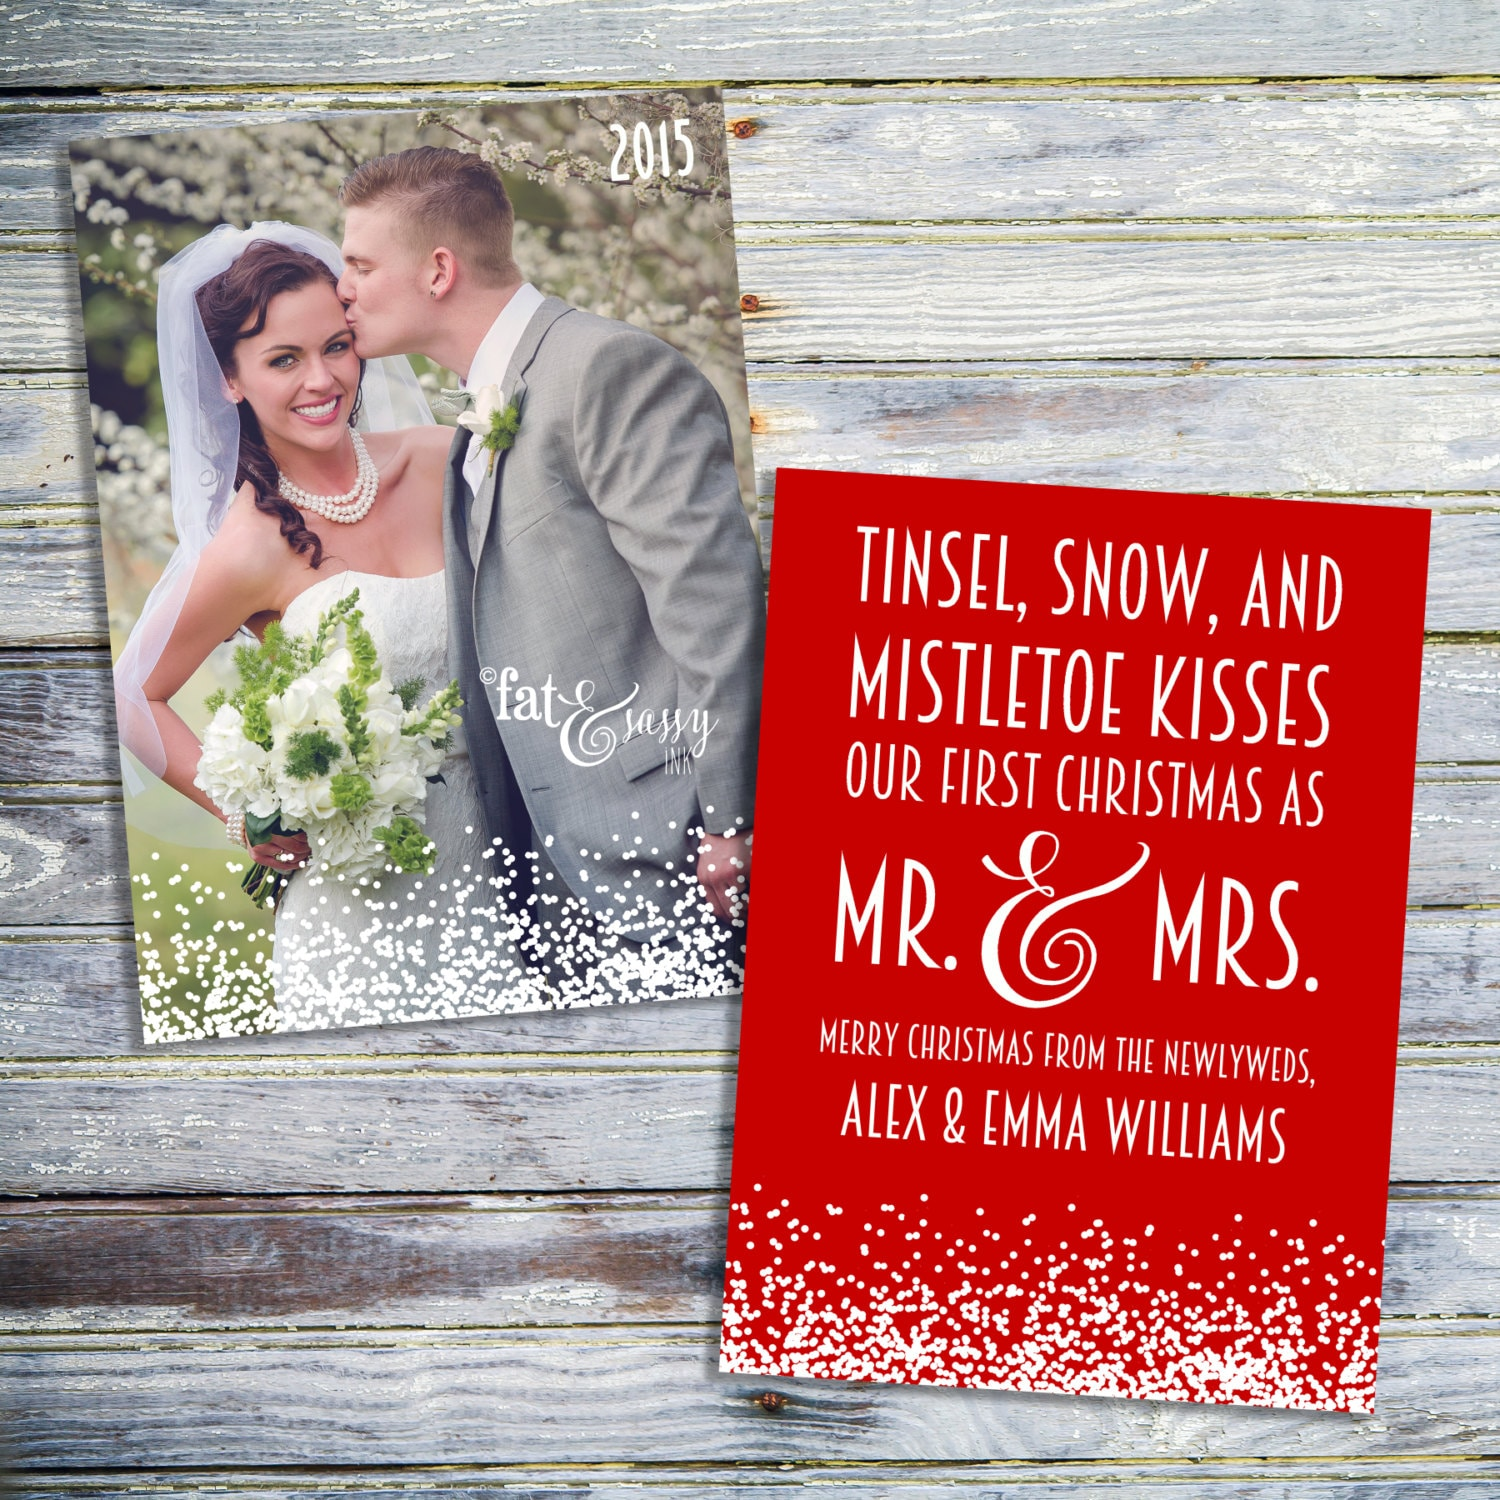 Our First Christmas As Mr. And Mrs. Card, Just Married Christmas Card, Newlywed Christmas Card, Wedding Christmas Card, Printable Card